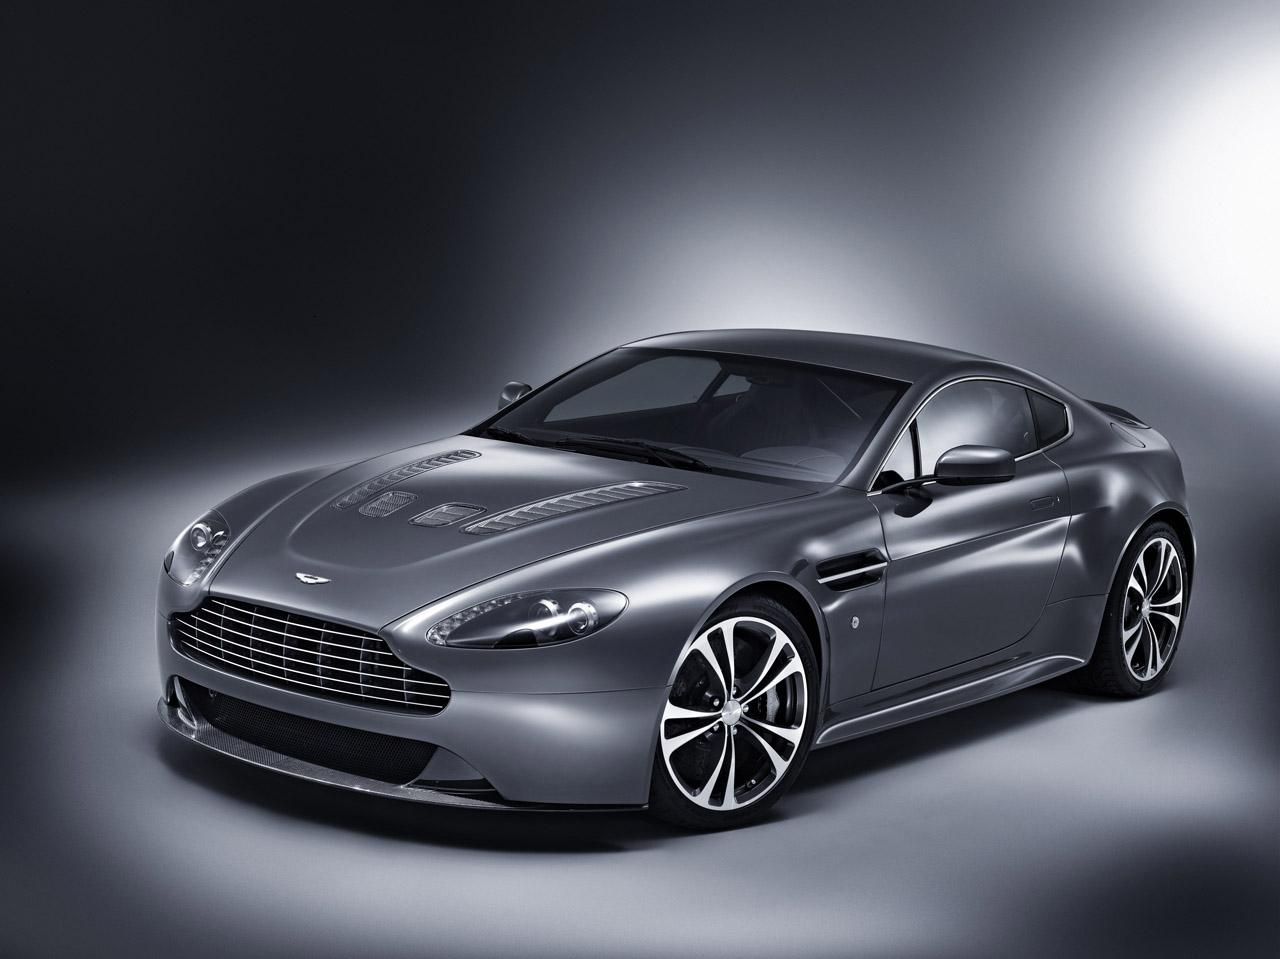 UK Auto Cars: Free Download Cars New Desktop Wallpapers 2012